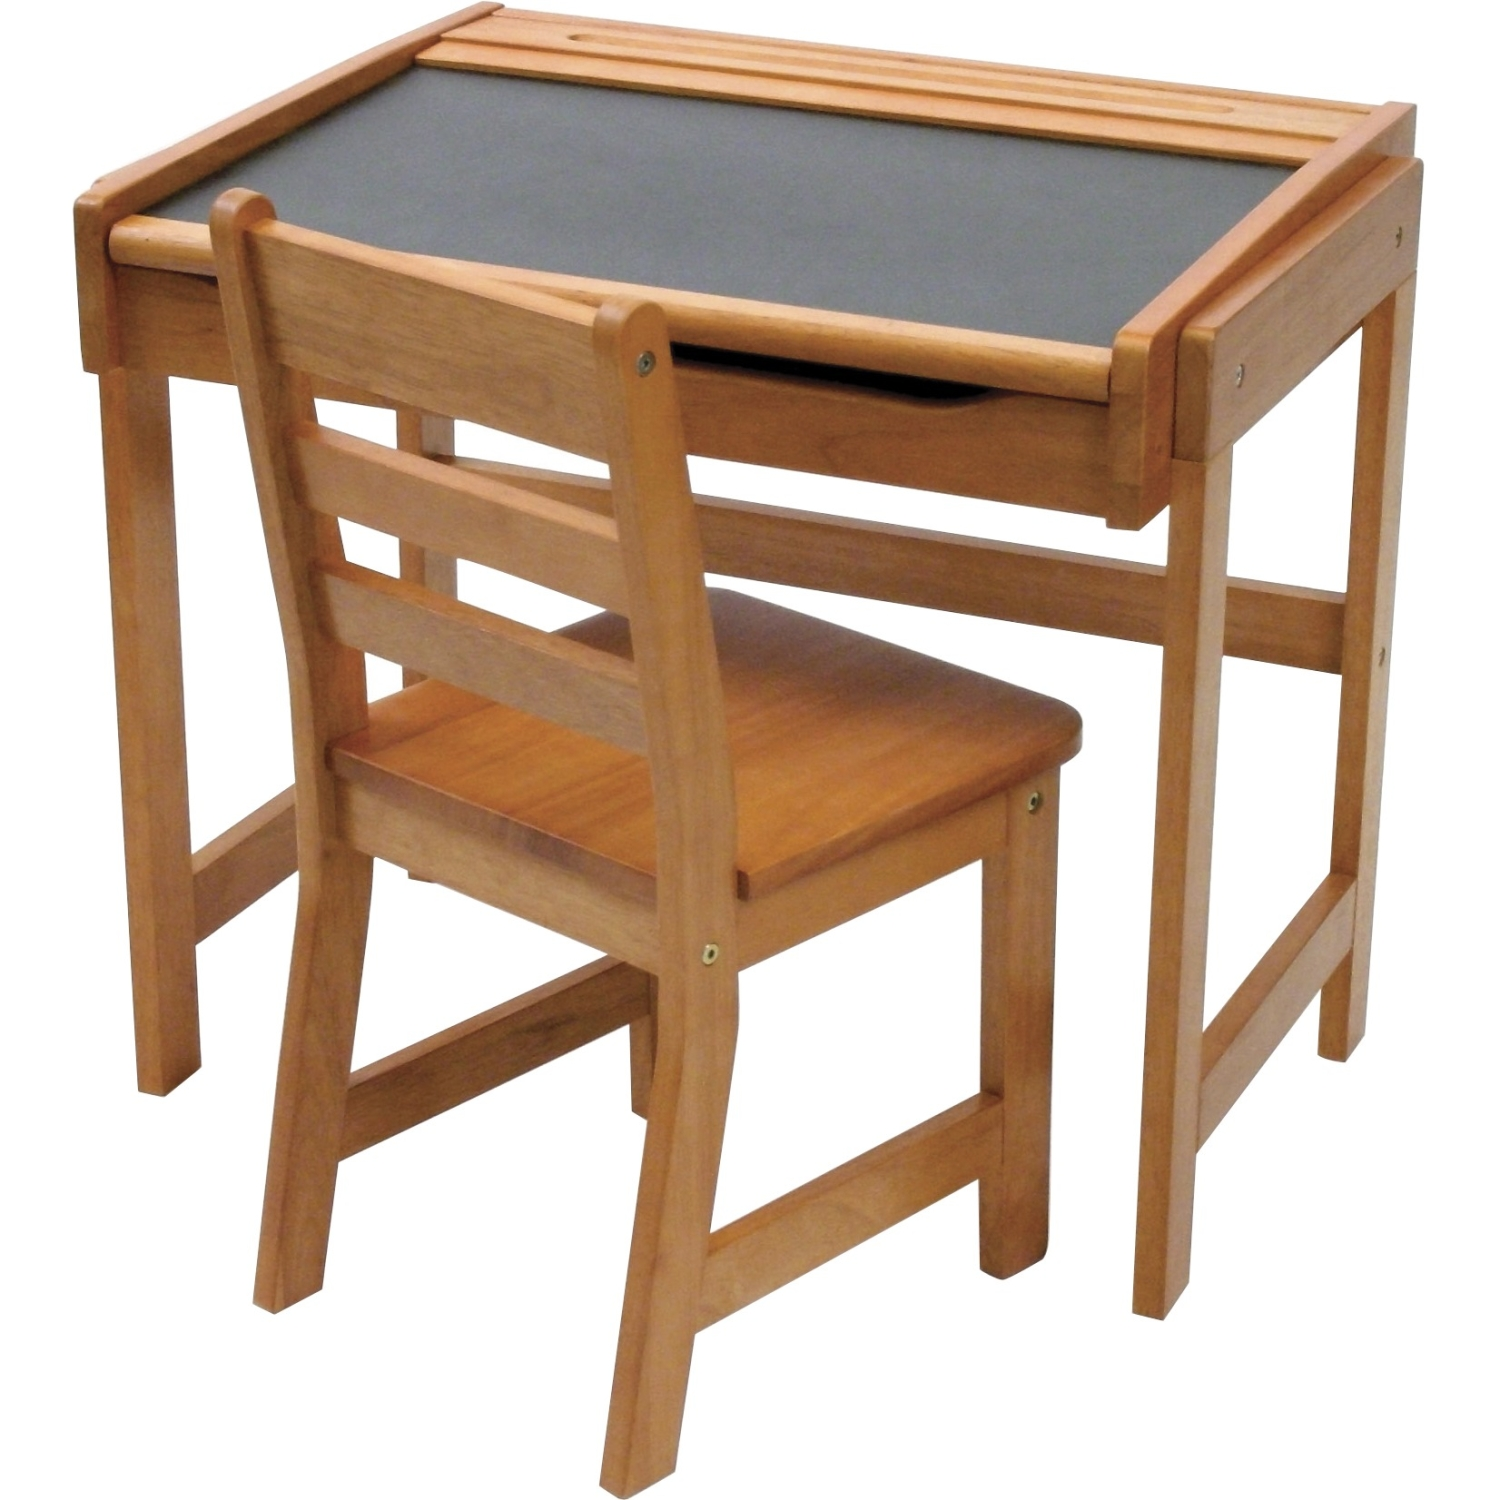 Desk With Chalkboard and Chair  Pecan Finish   Walmart com. School Desk And Chair Combo. Home Design Ideas